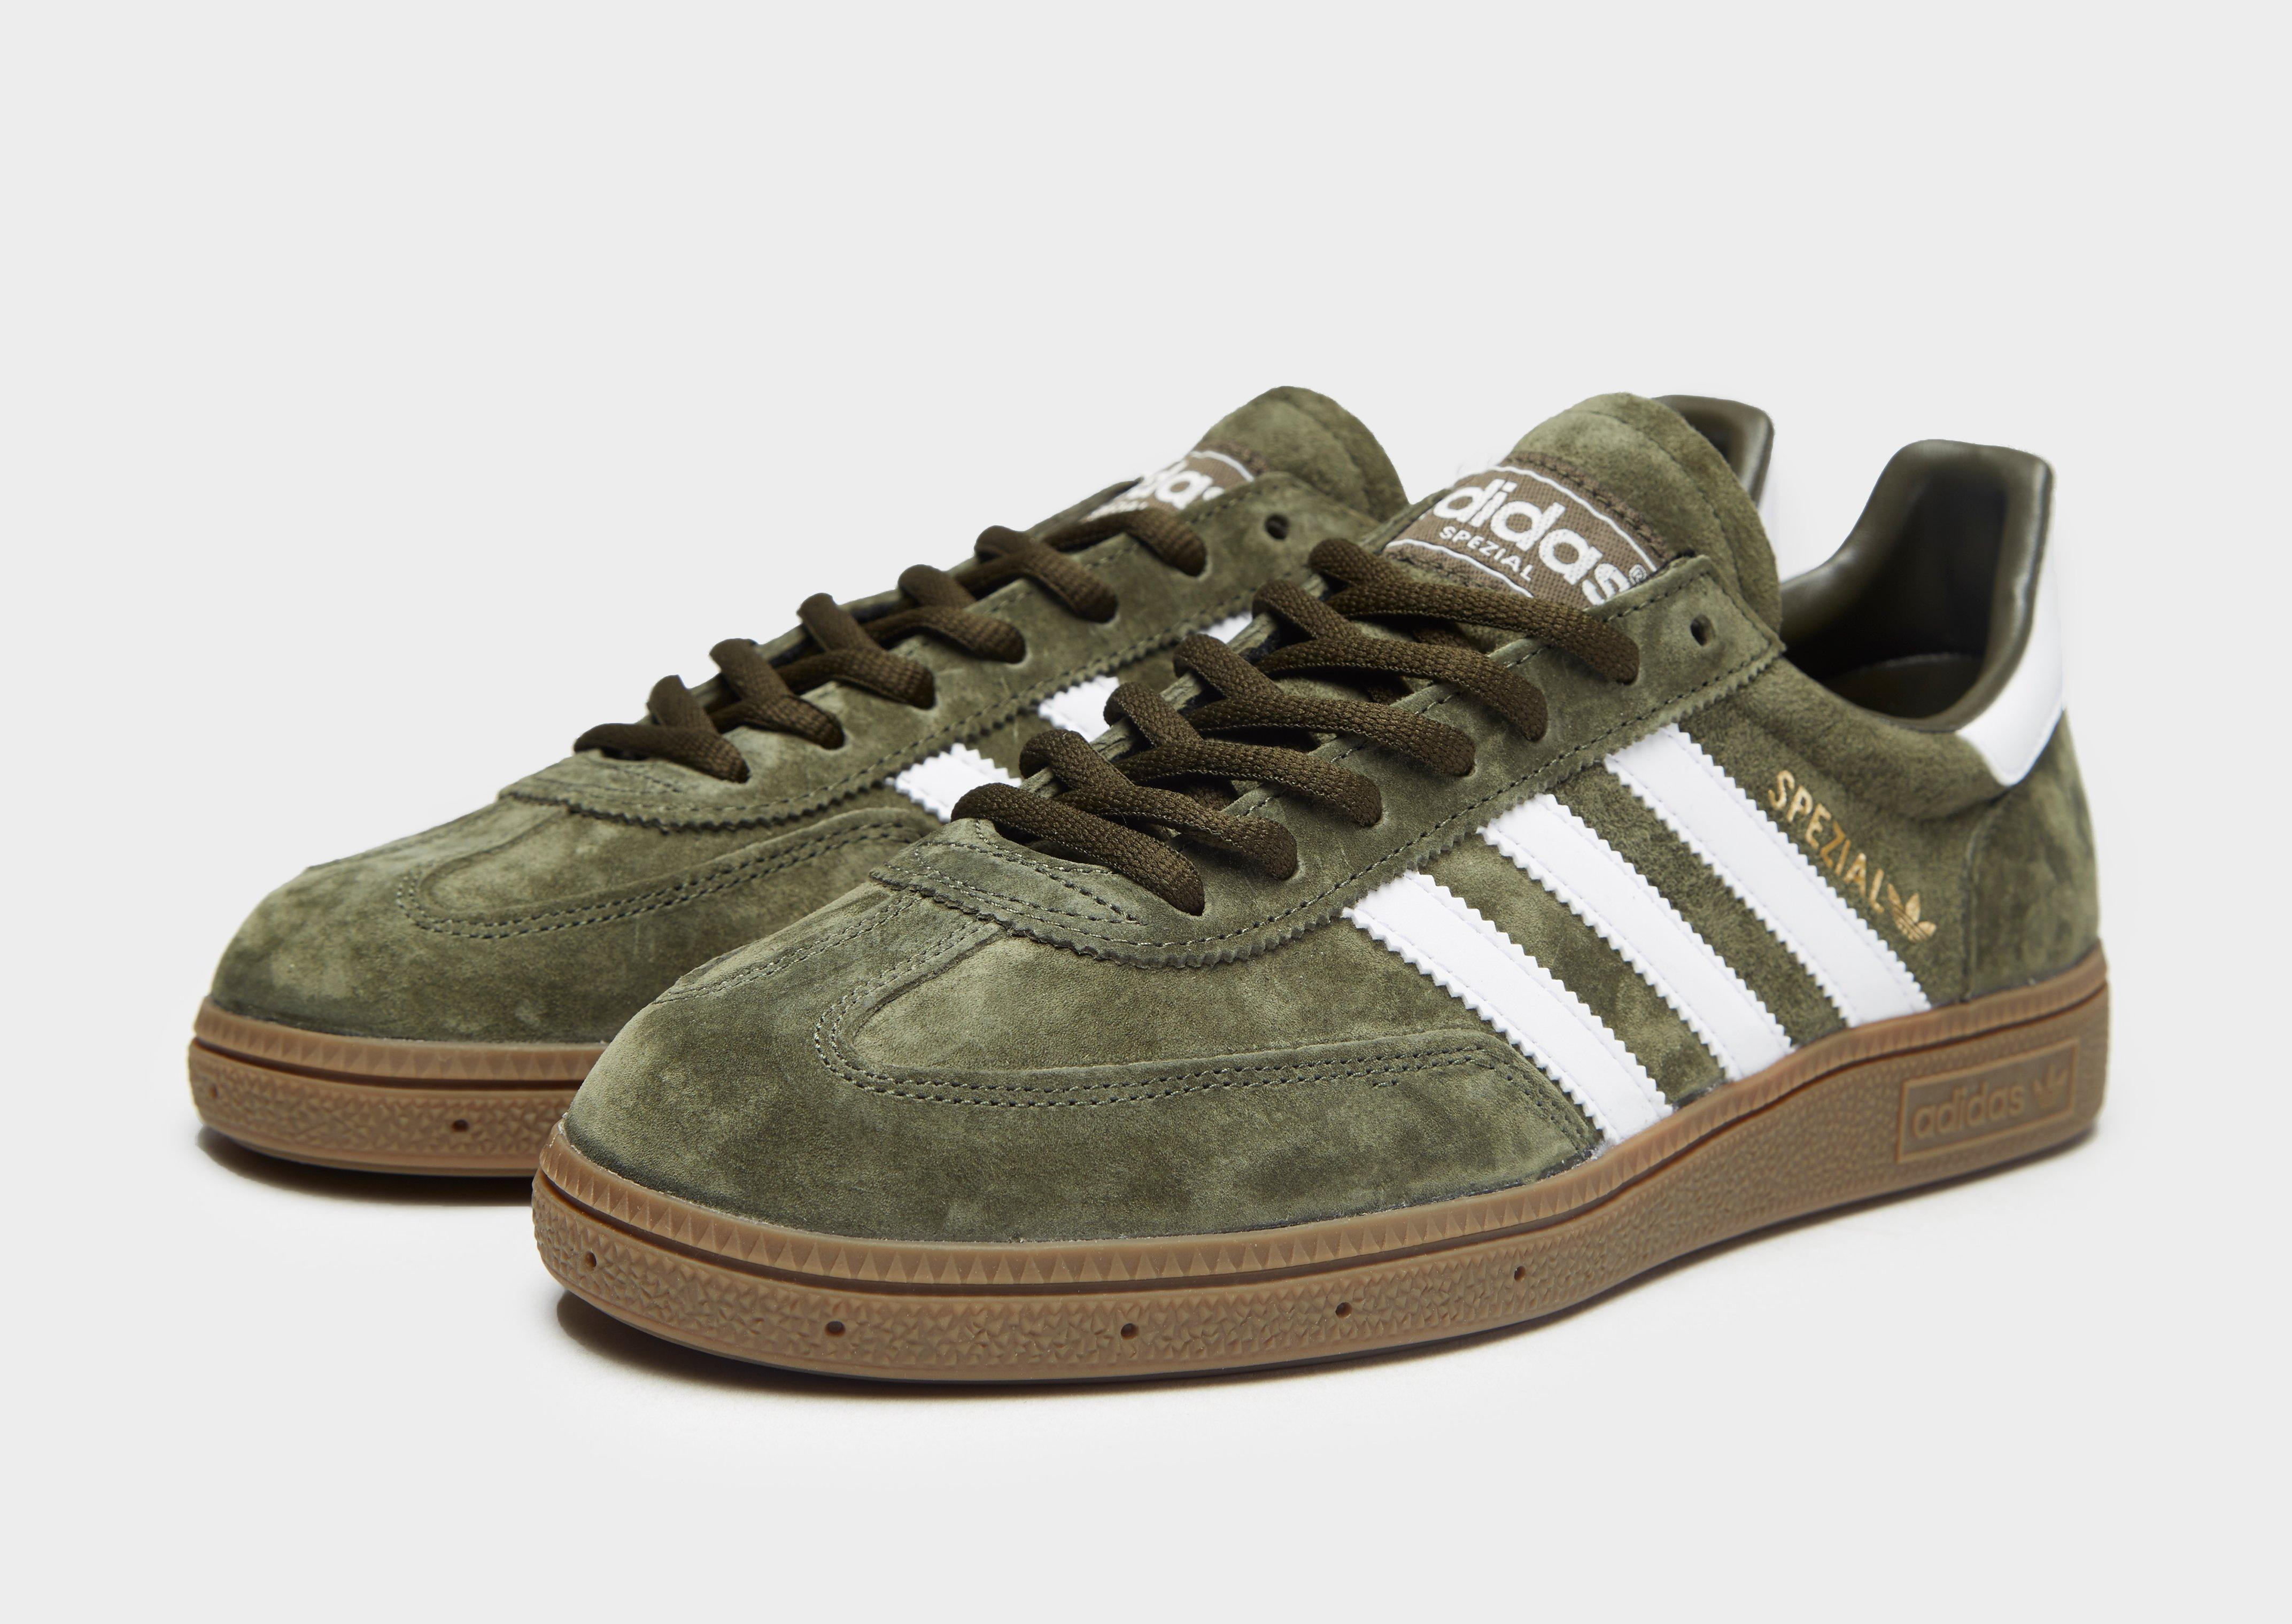 wholesale online competitive price check out Handball Spezial